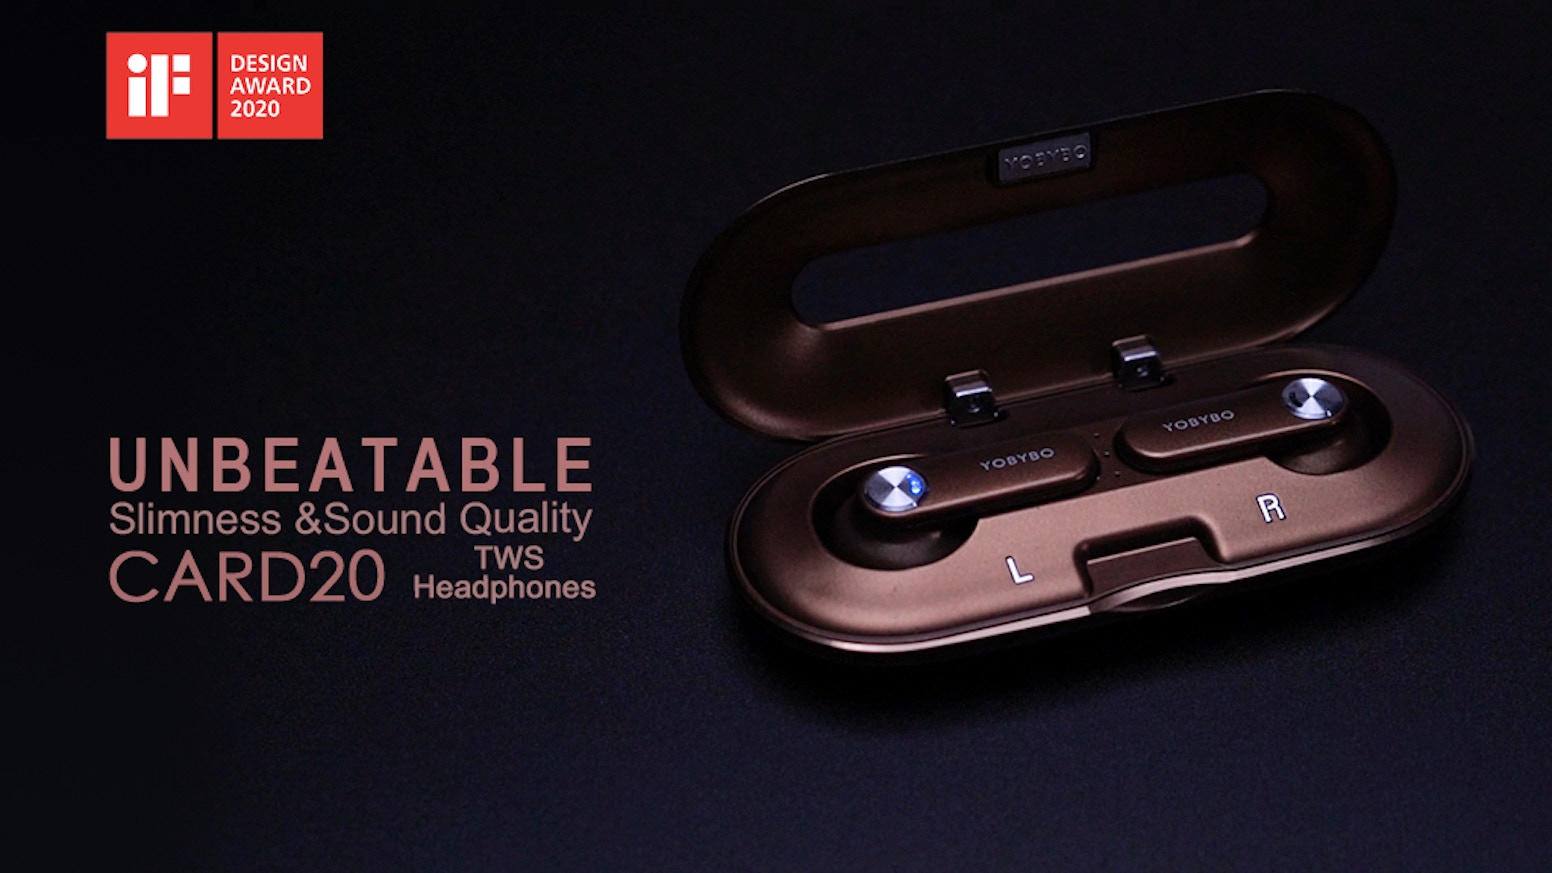 0.5in thick with case, 0.1oz/piece | Ergonomic fit & stability | Qualcomm BT5.0, aptX, cVc | Premium 13mm speaker driver | IPX4